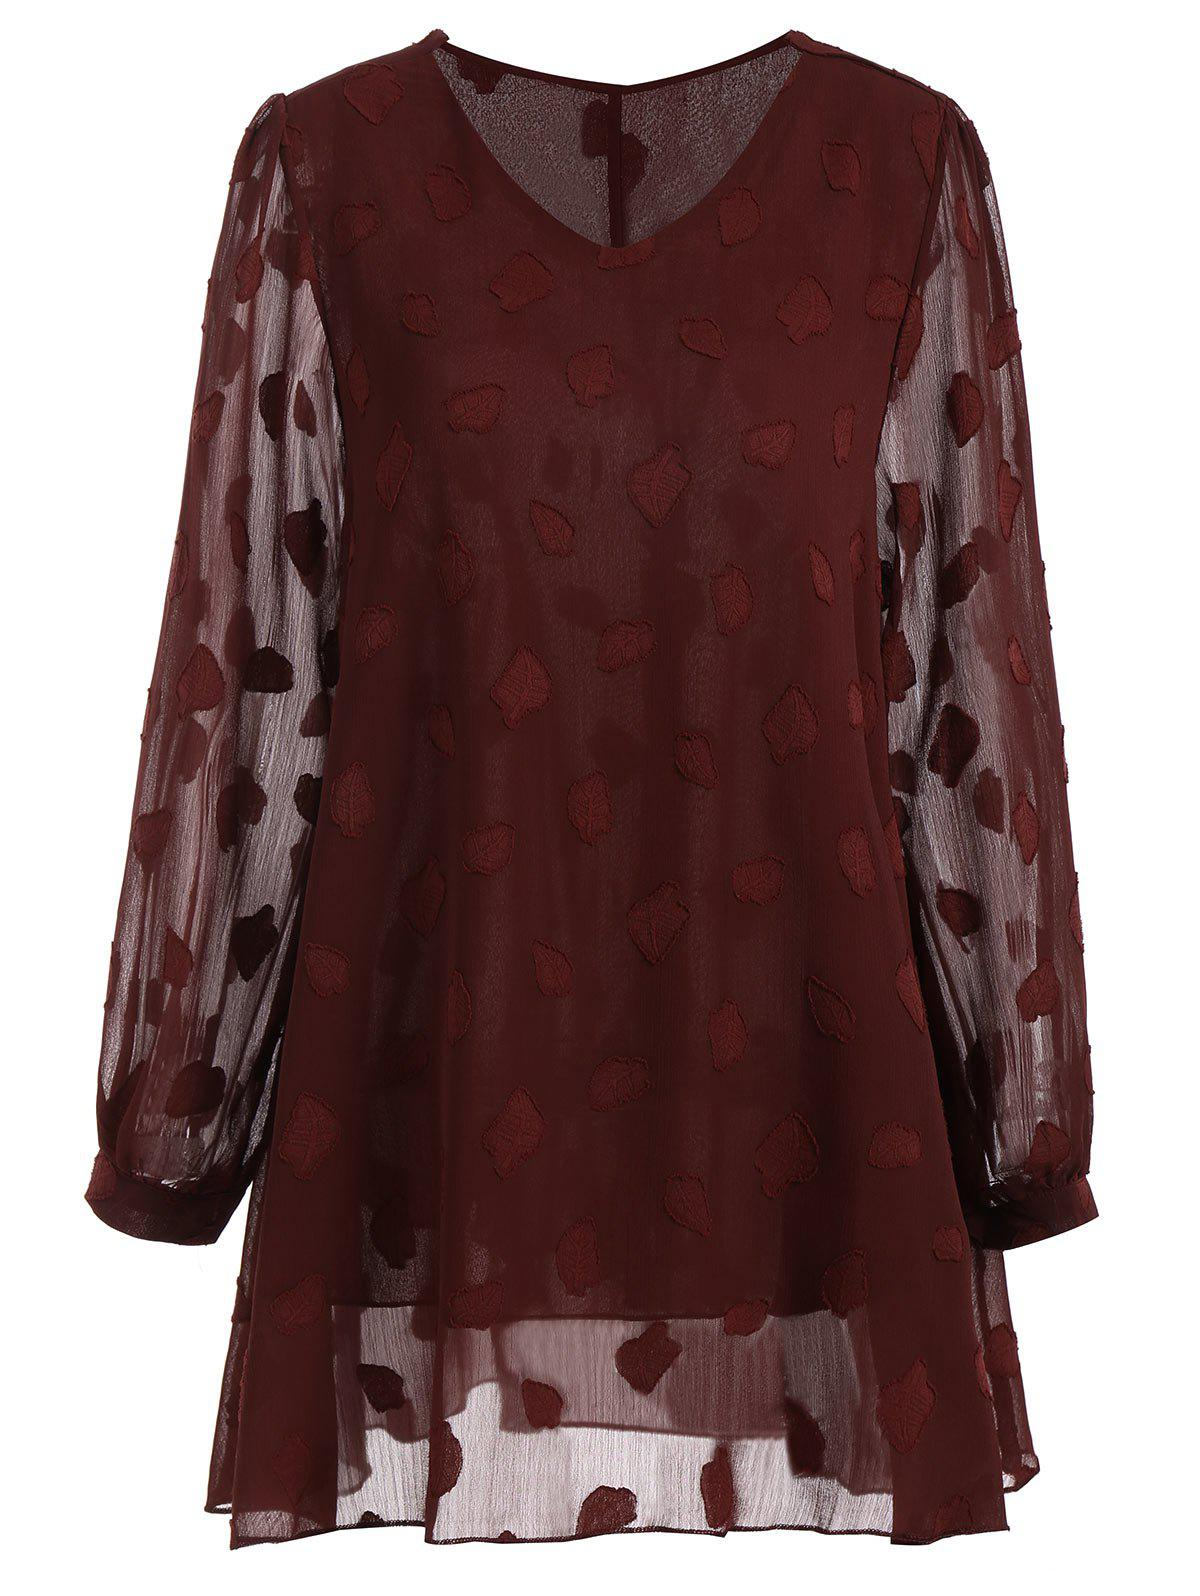 Plus Size Sheer Leaf V Neck BlouseWOMEN<br><br>Size: 5XL; Color: WINE RED; Material: Polyester; Shirt Length: Long; Sleeve Length: Full; Collar: V-Neck; Style: Fashion; Season: Fall; Embellishment: Appliques; Pattern Type: Solid; Weight: 0.2850kg; Package Contents: 1 x Blouse;